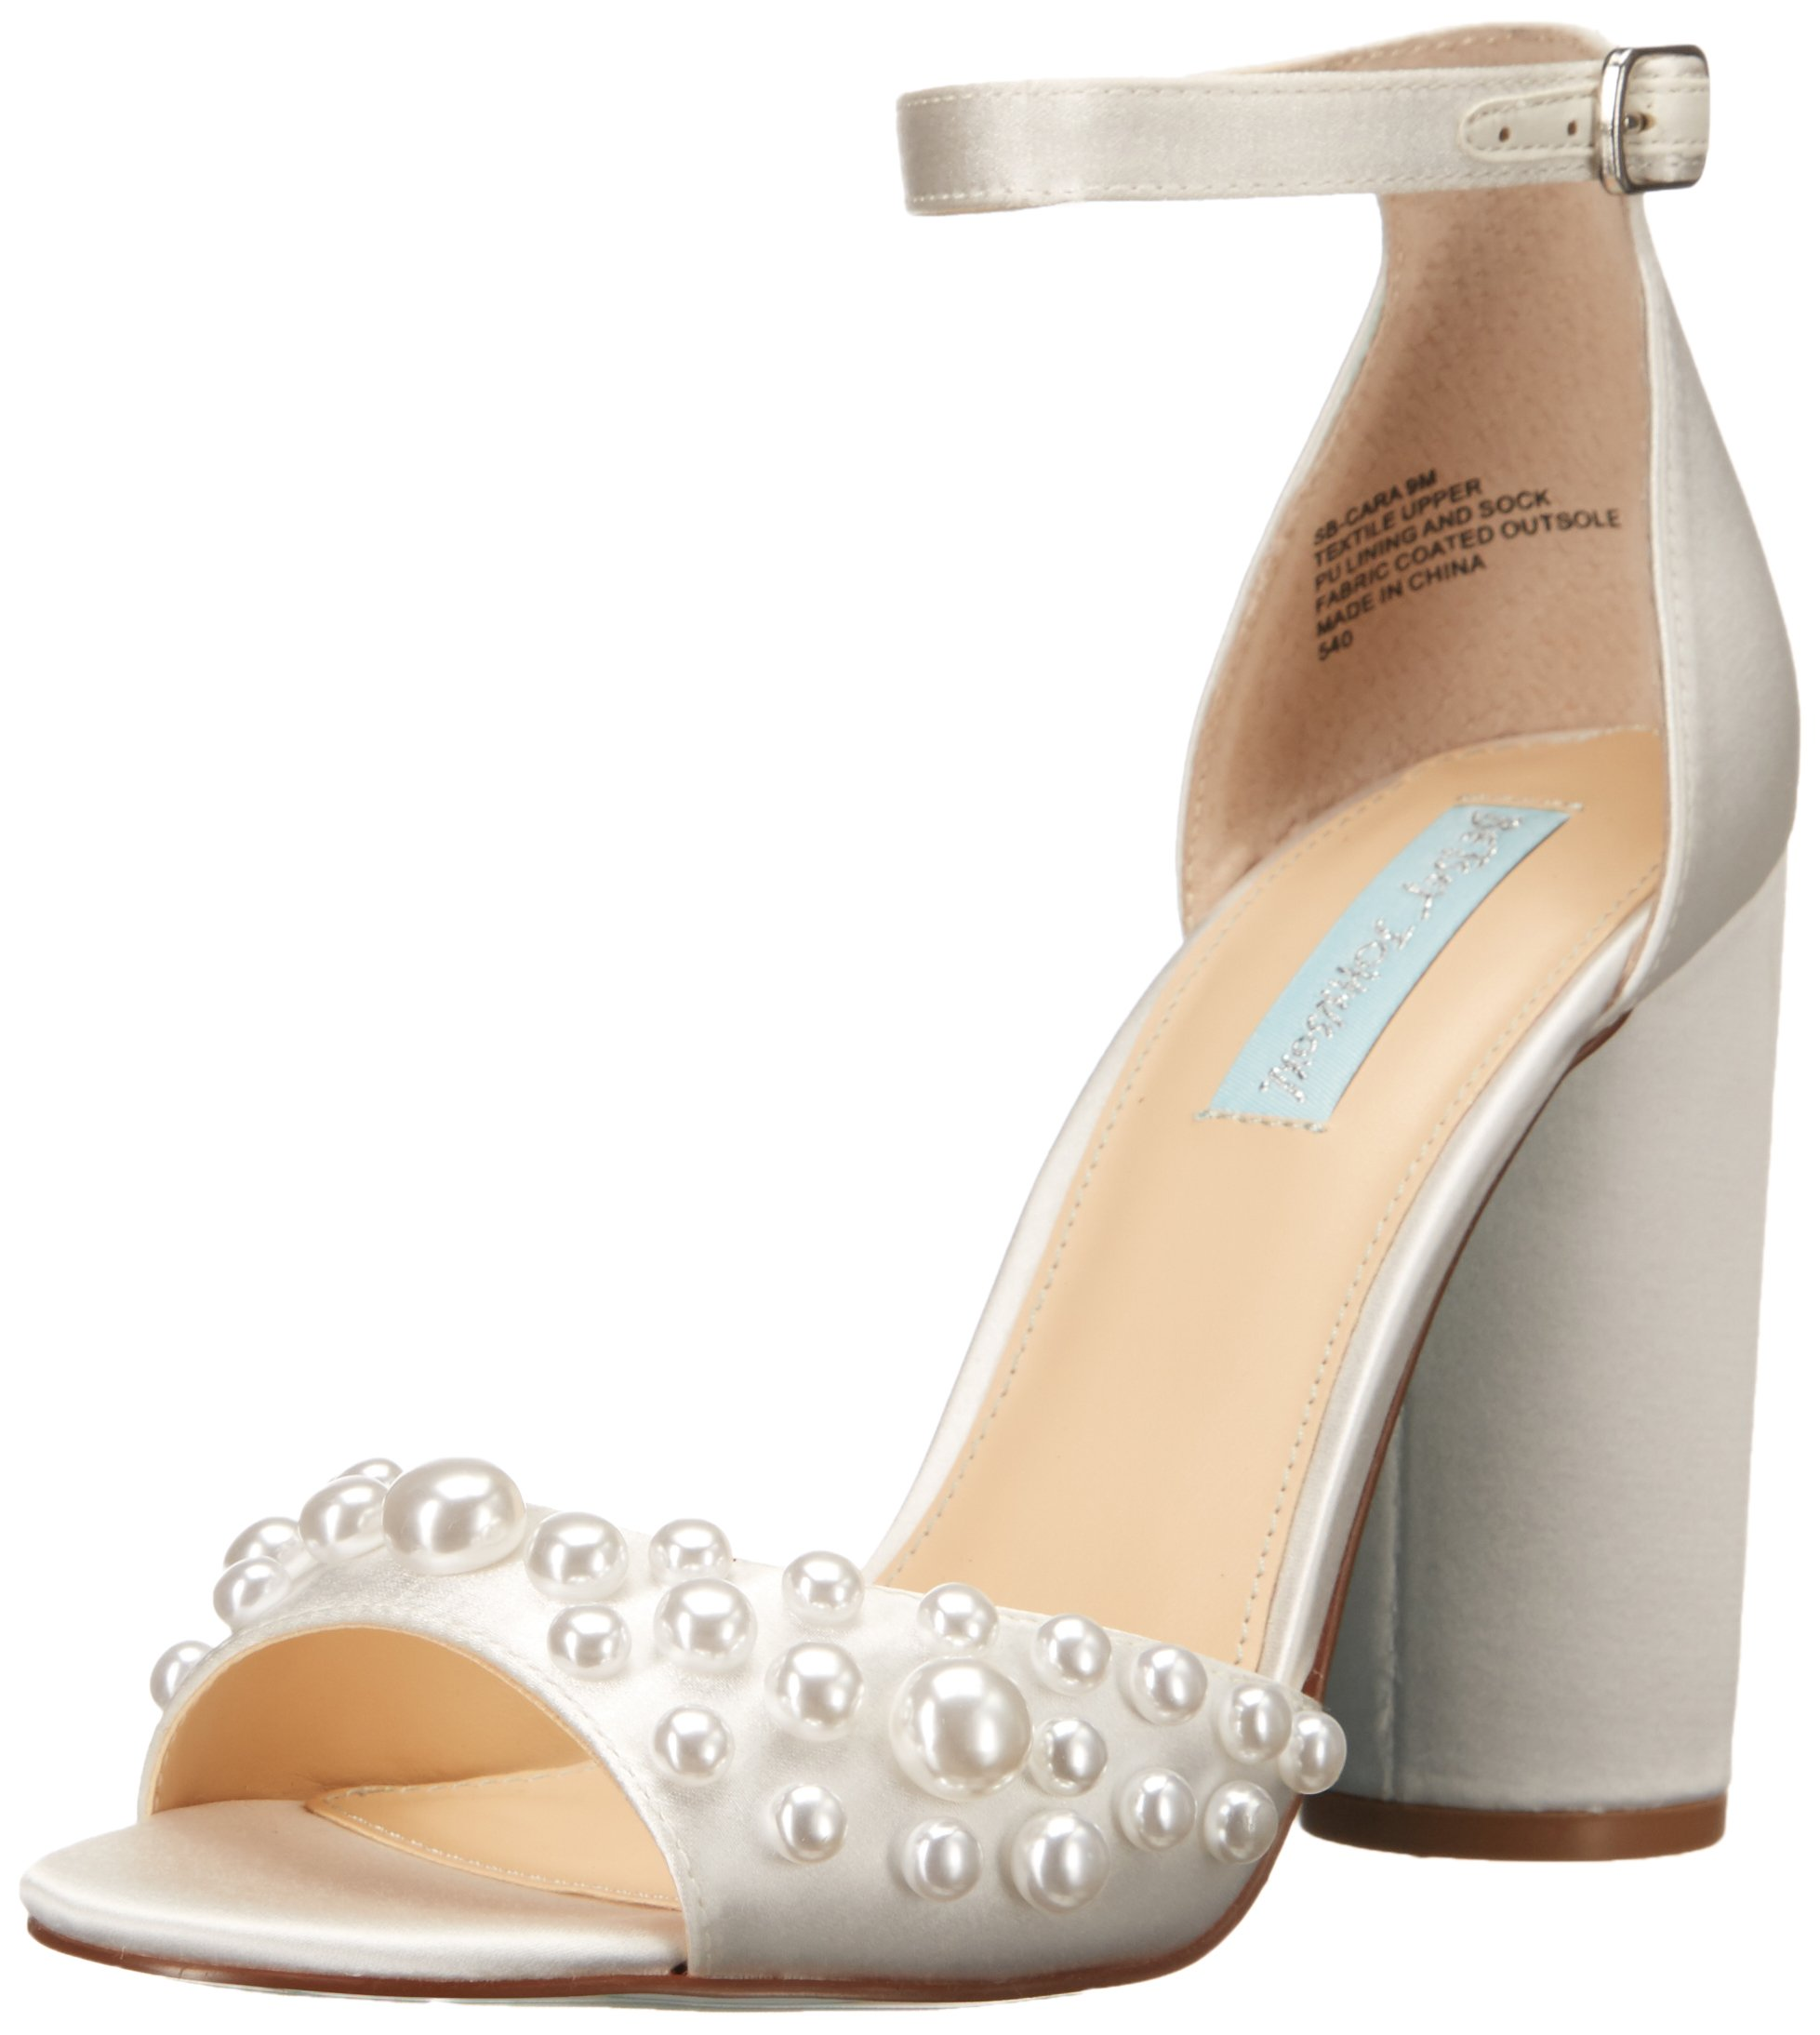 Blue by Betsey Johnson Women's Sb-Cara Dress Sandal, Ivory, 6.5 M US